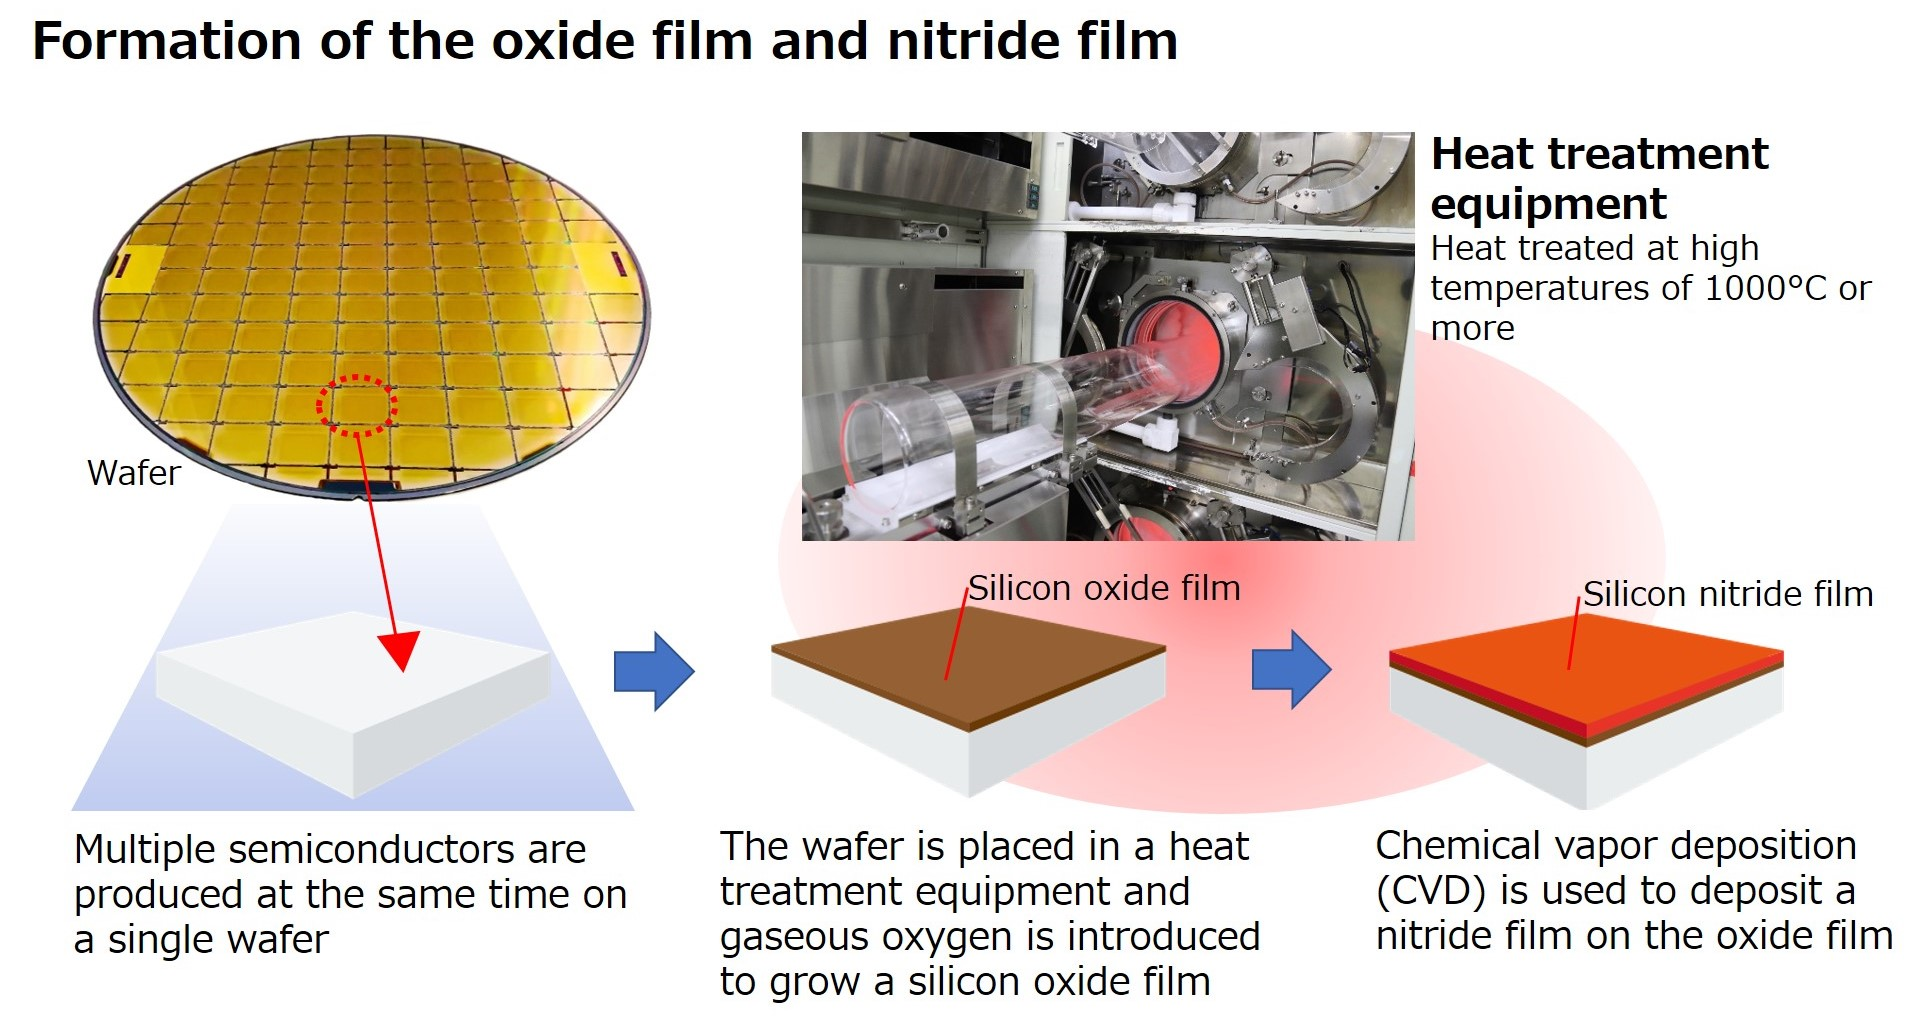 Formation of the oxide film and nitride film